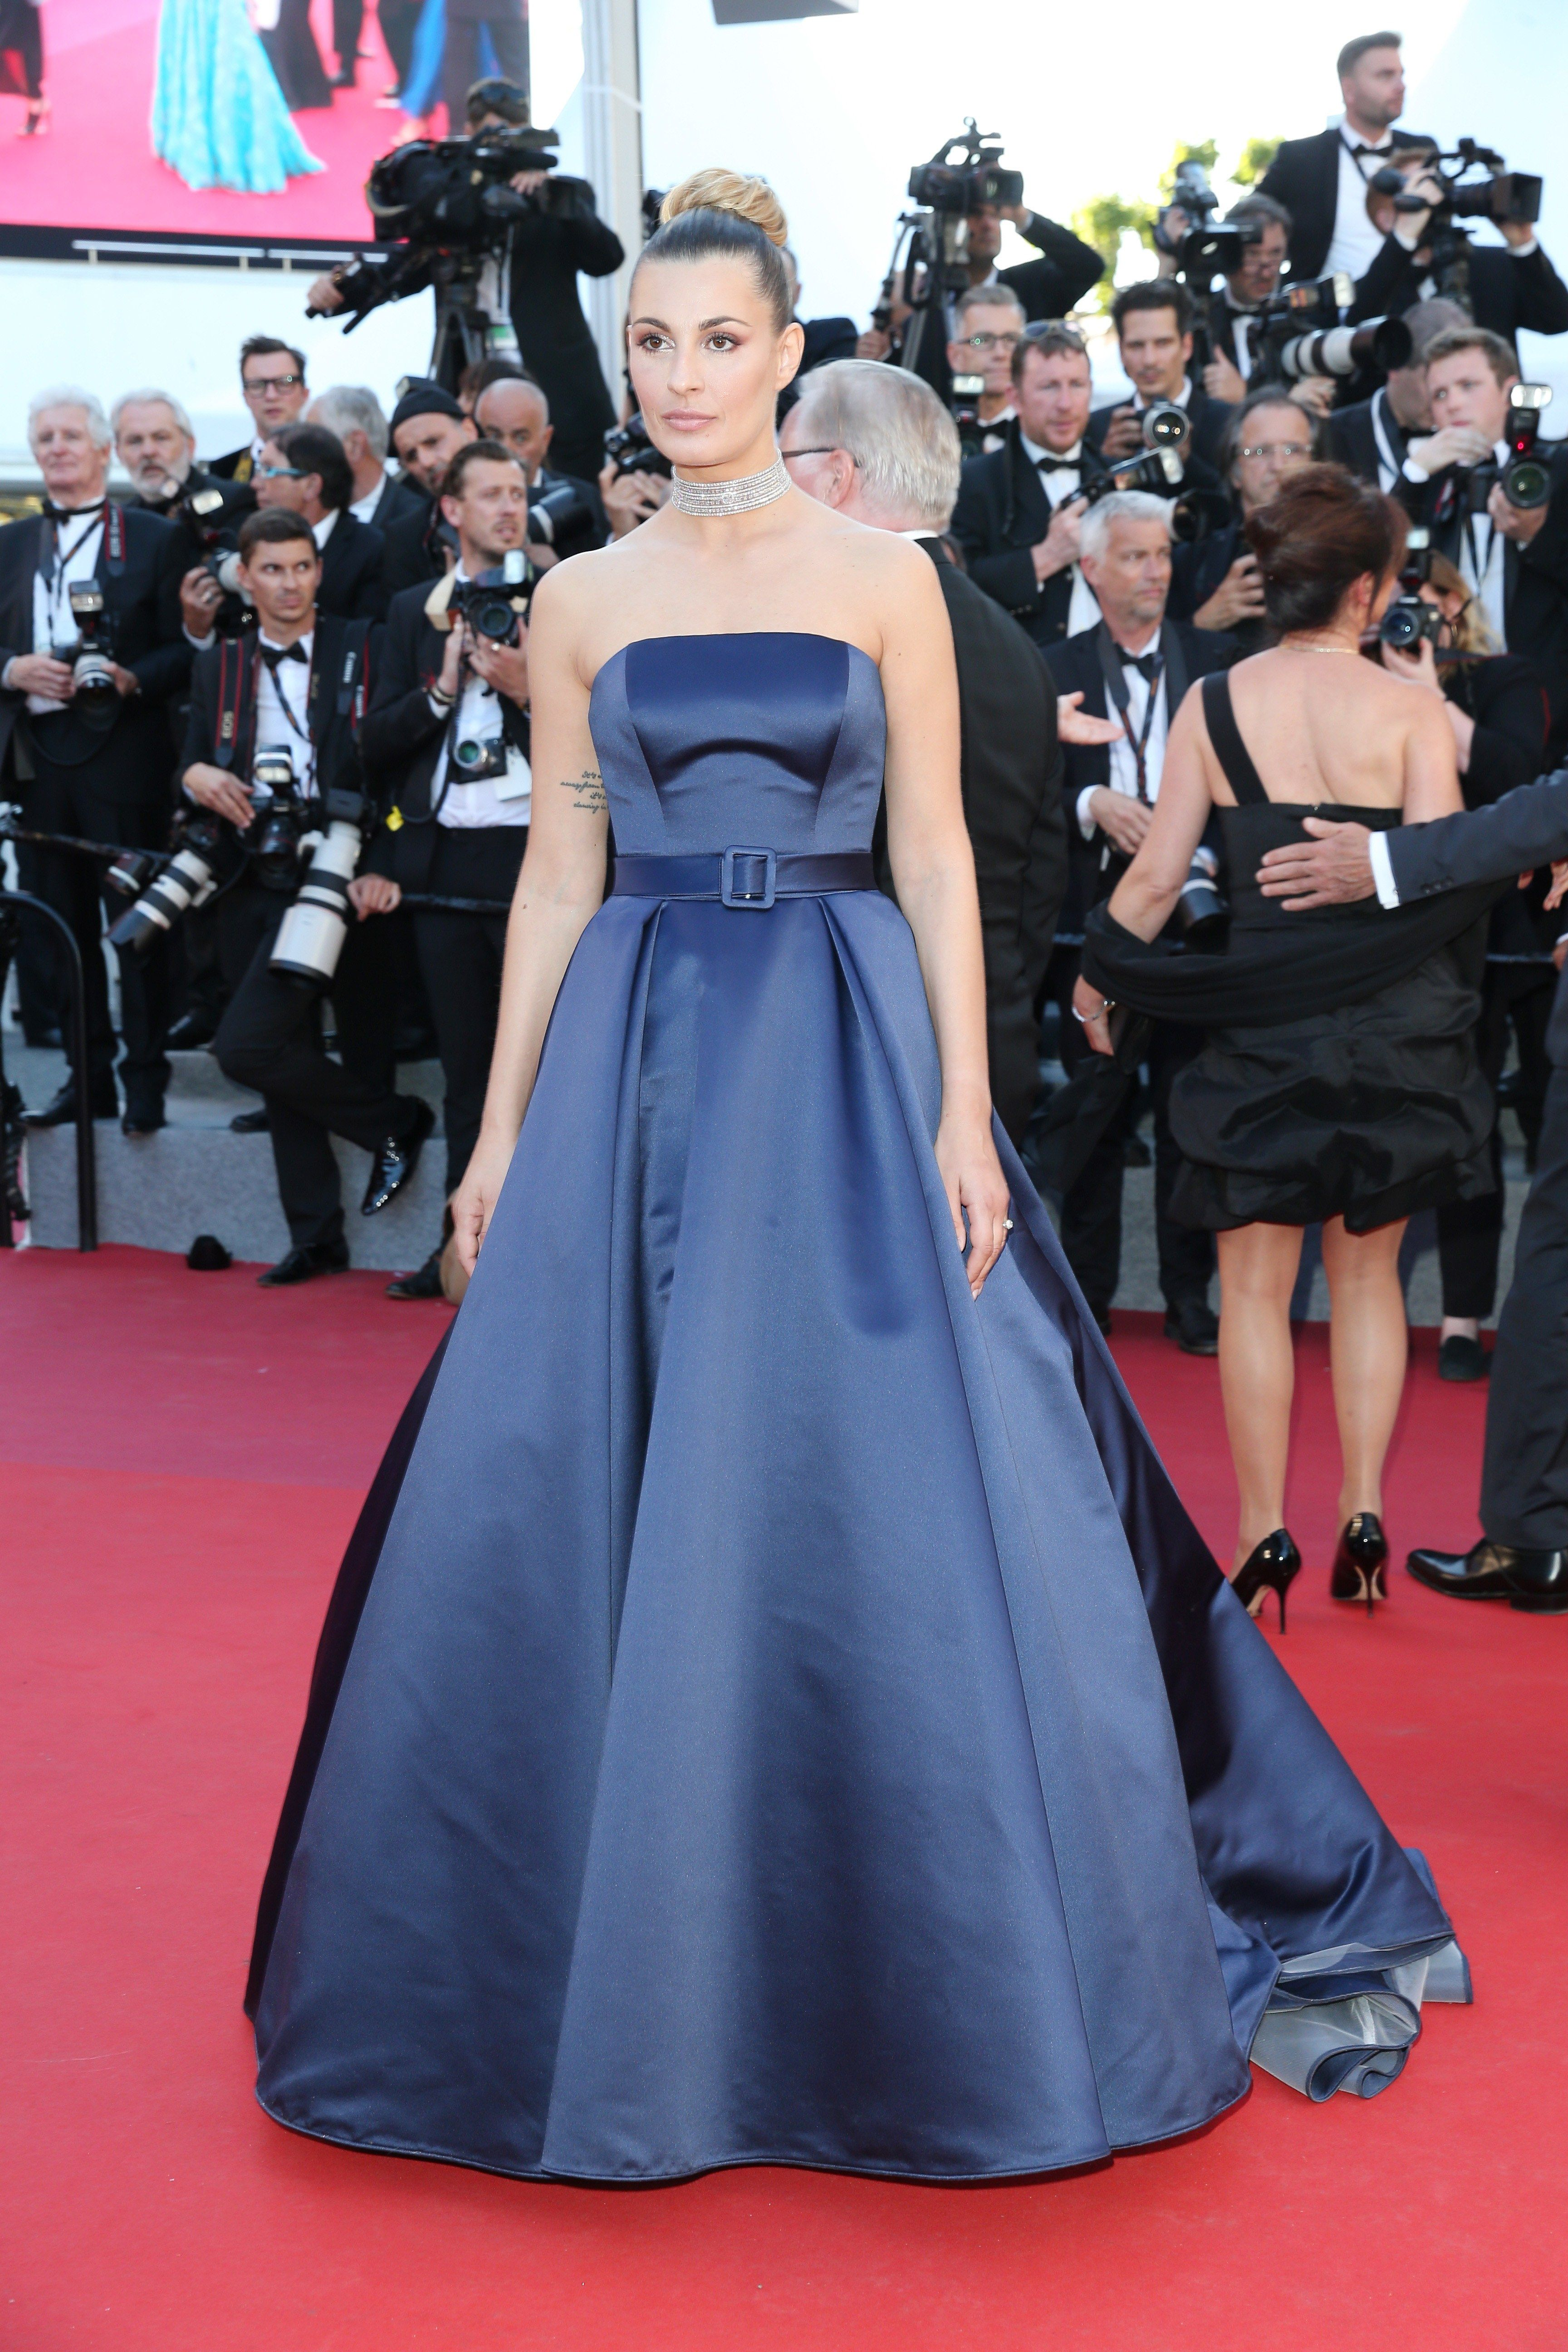 See every red carpet look from the cannes film festival